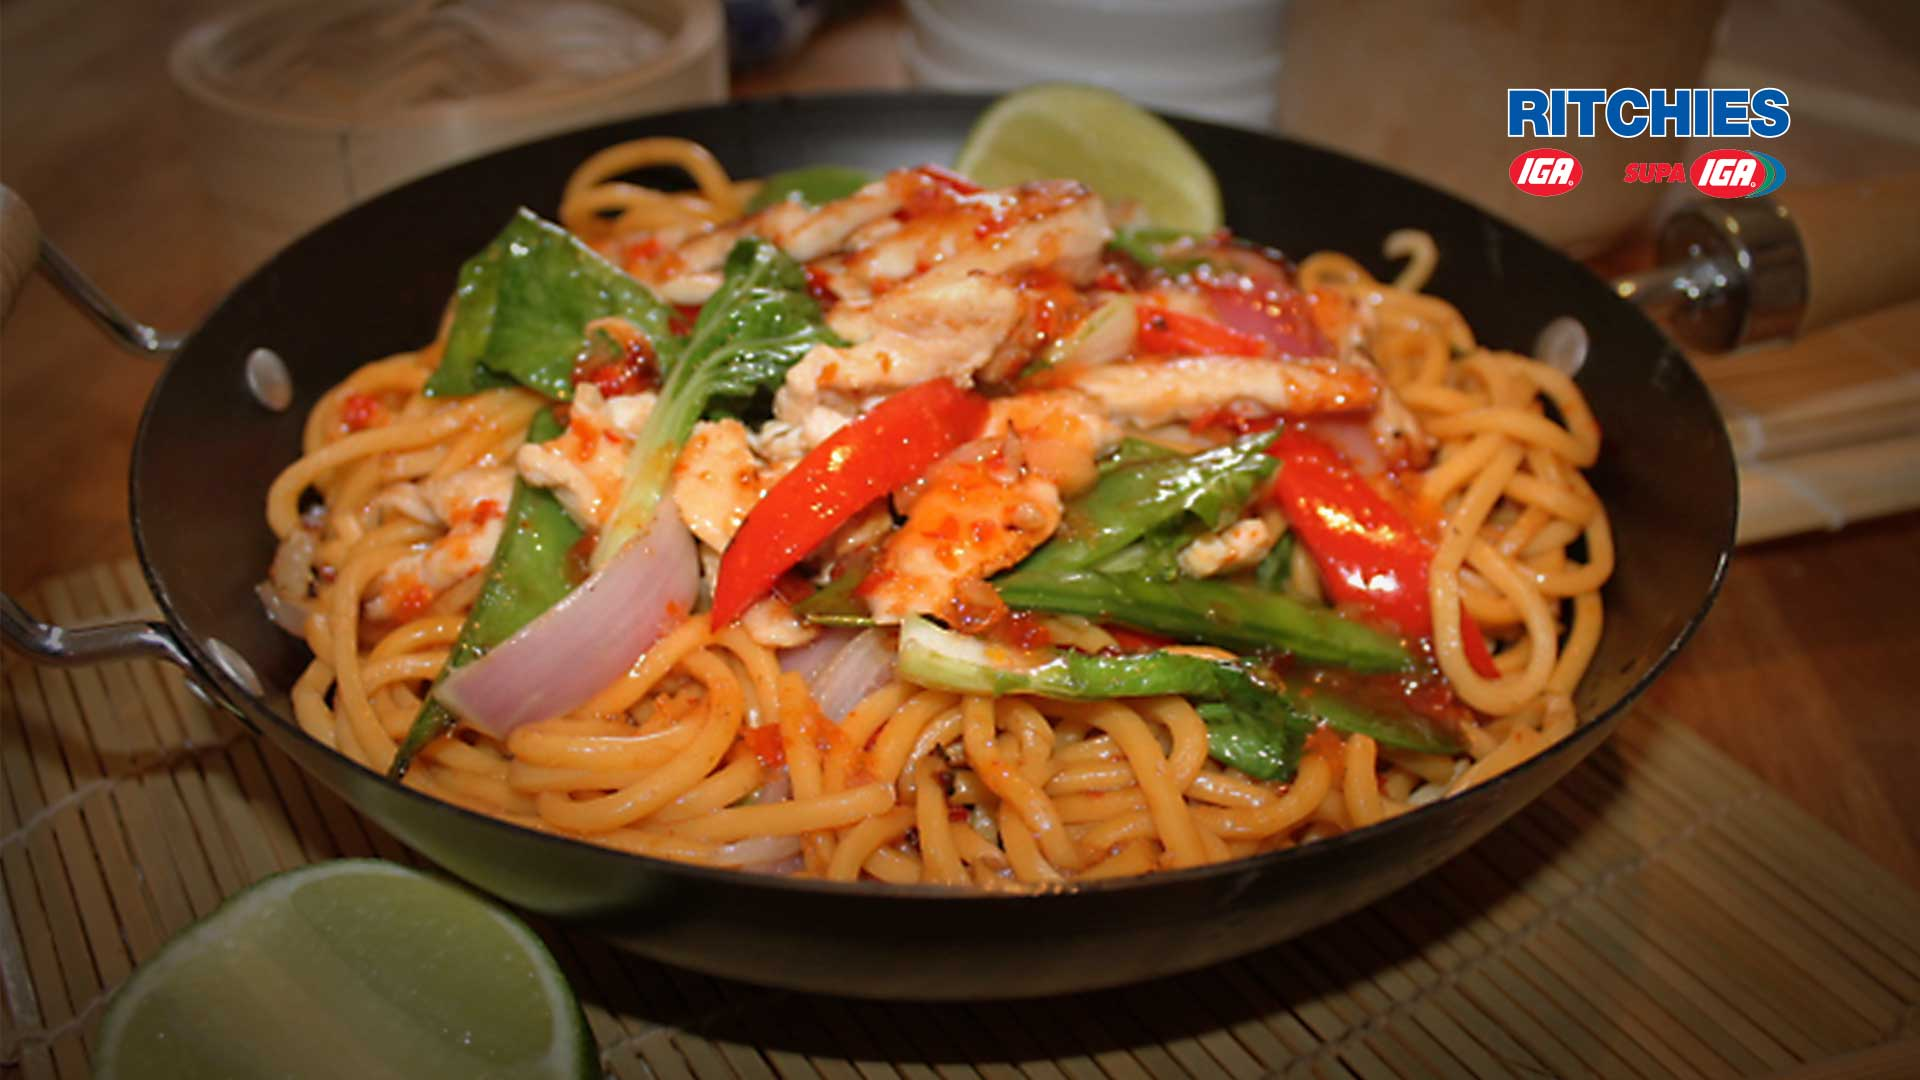 chicken stir-fry with Asian greens and hokkien noodles